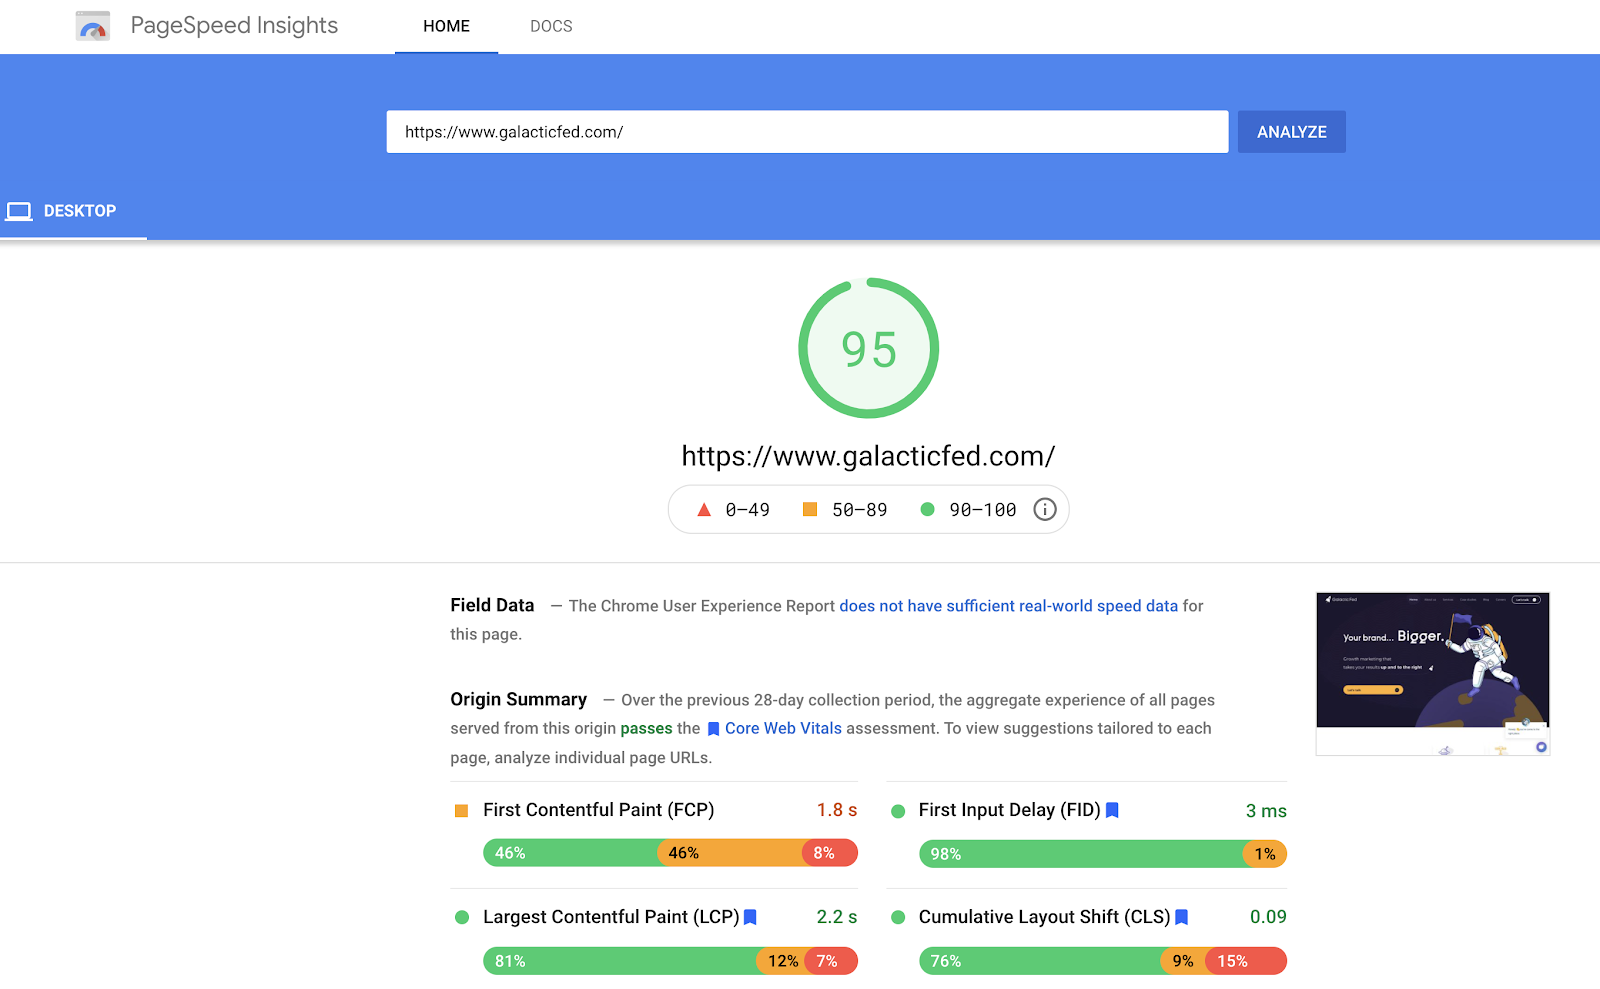 PageSpeed Insights of galacticfed.com showing 95% score.